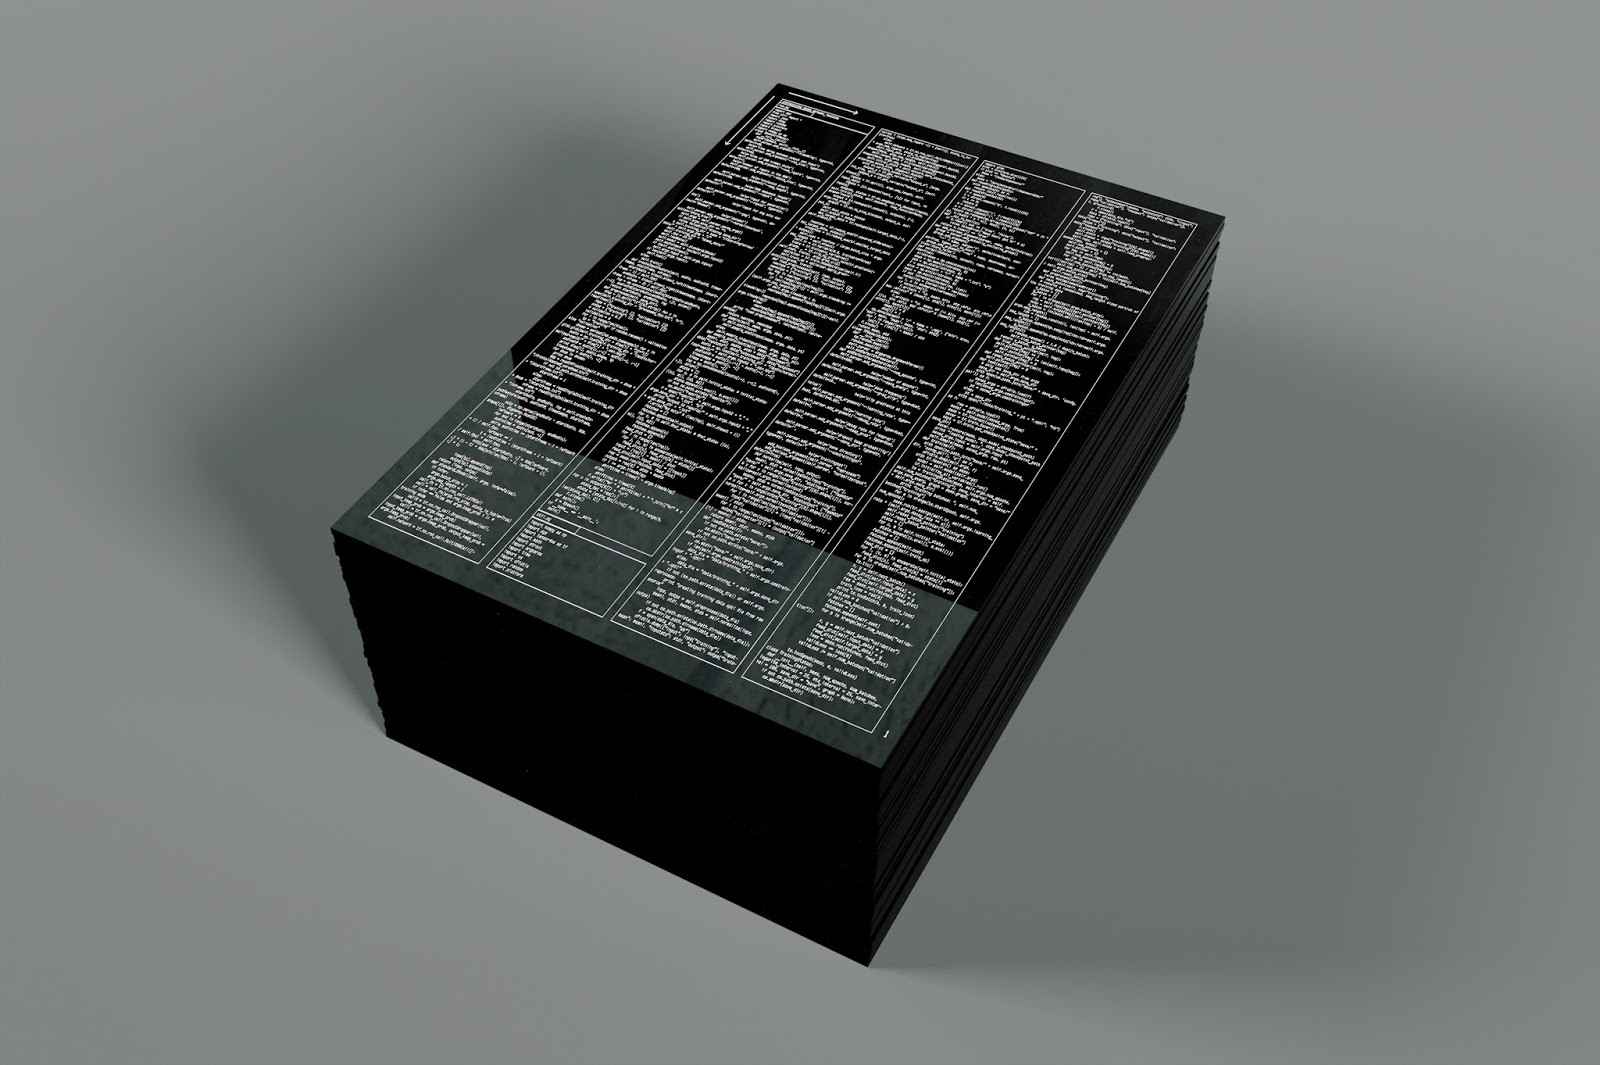 Digital Dust Jay Owens Medium High Res Jpeg Of A Circuit Board With Binary Codes As The Background Artist Designer Tobias Revell Laser Etched Python Code Supporting Libraries Required To Synthesise Fake Video Former Us President In 5pt Type